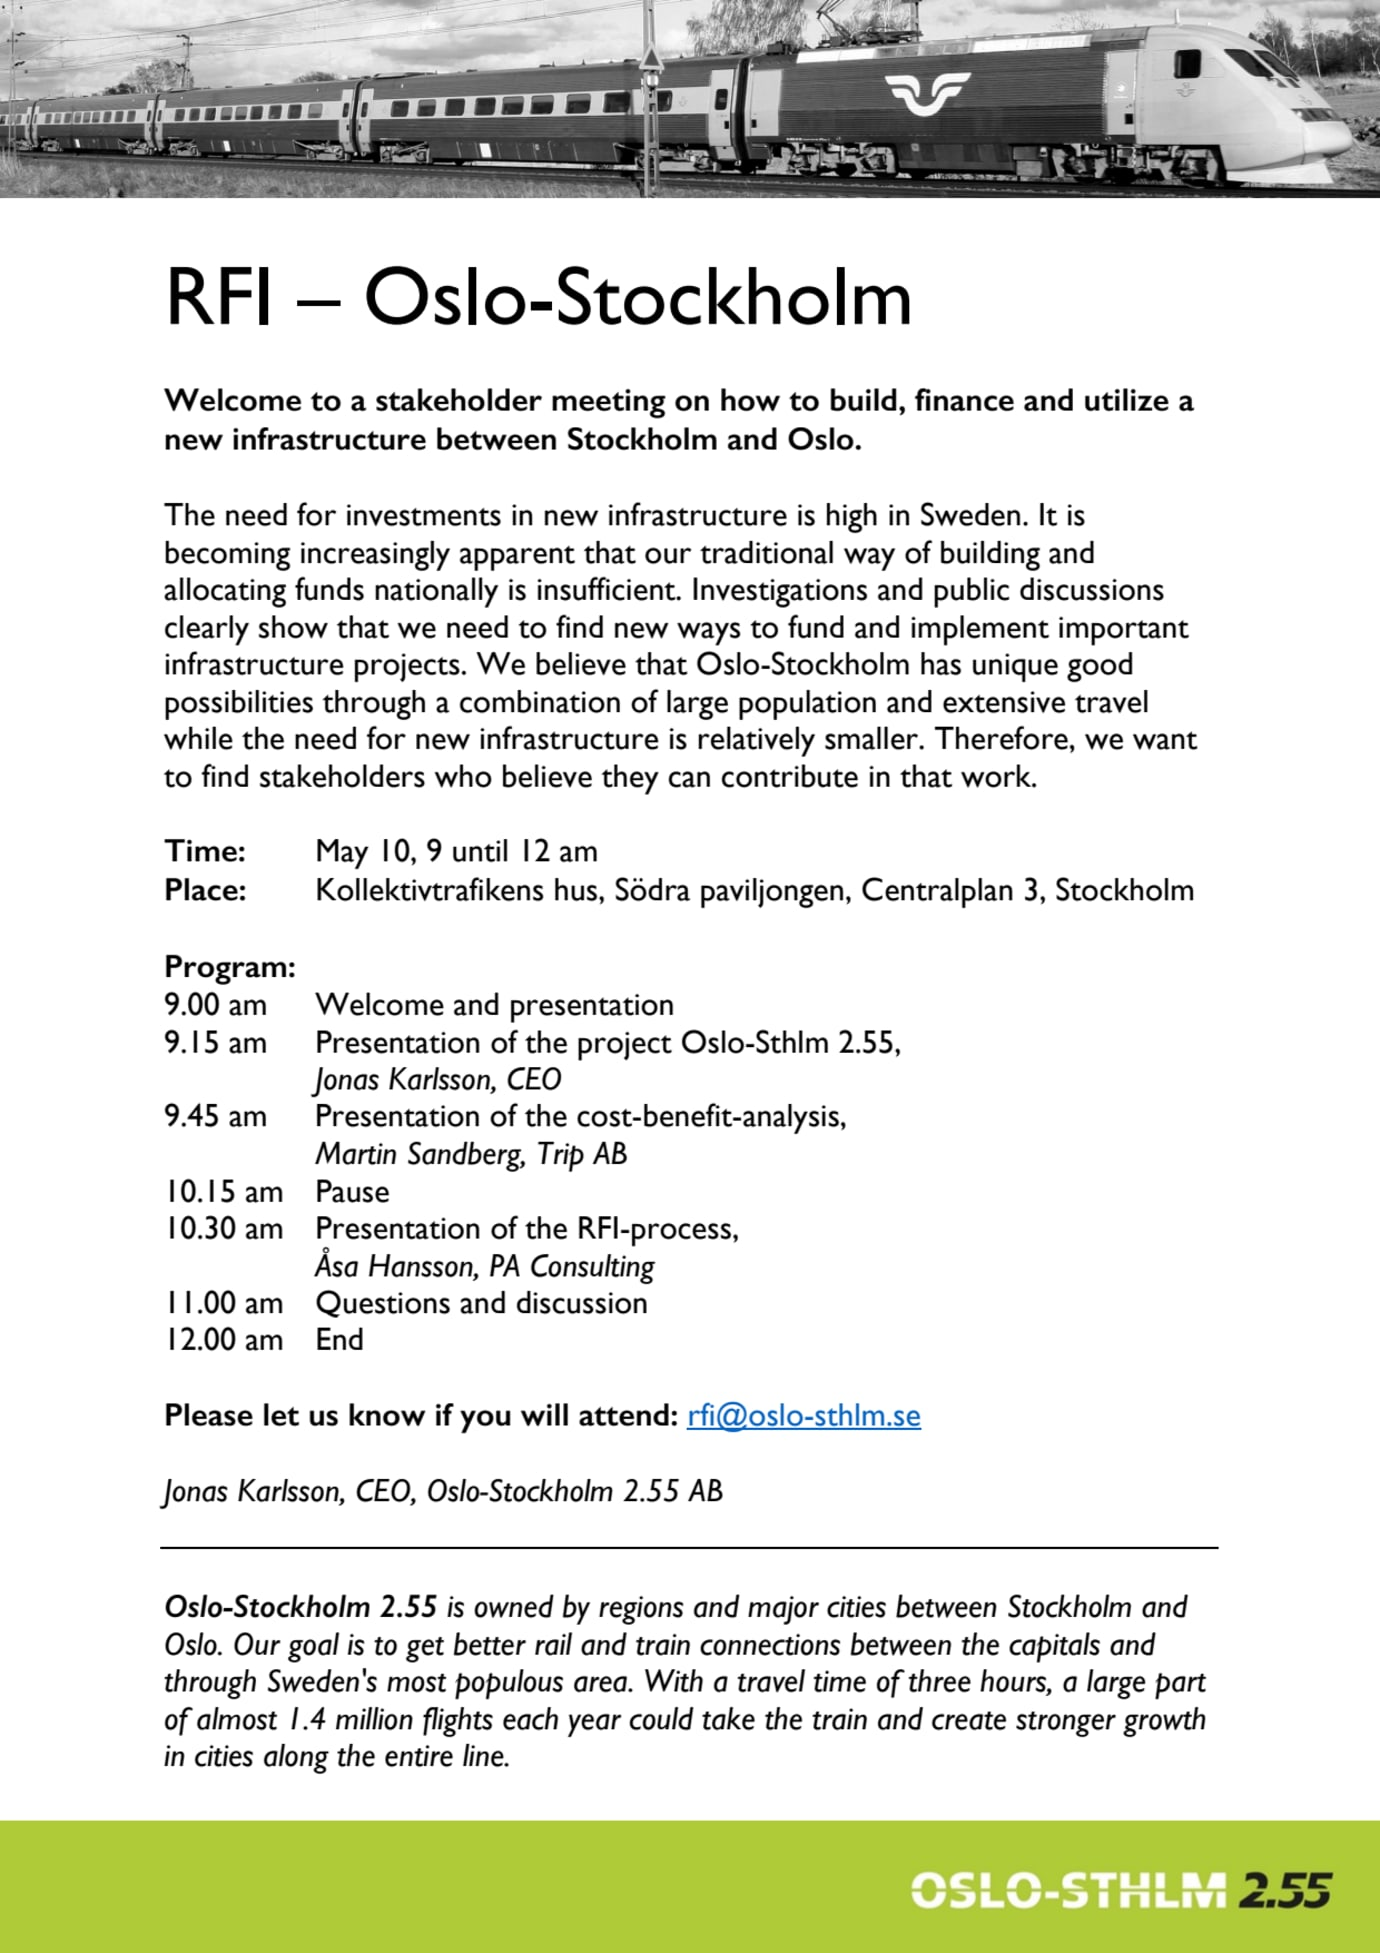 Stakeholder meeting on RFI Oslo-Stockholm